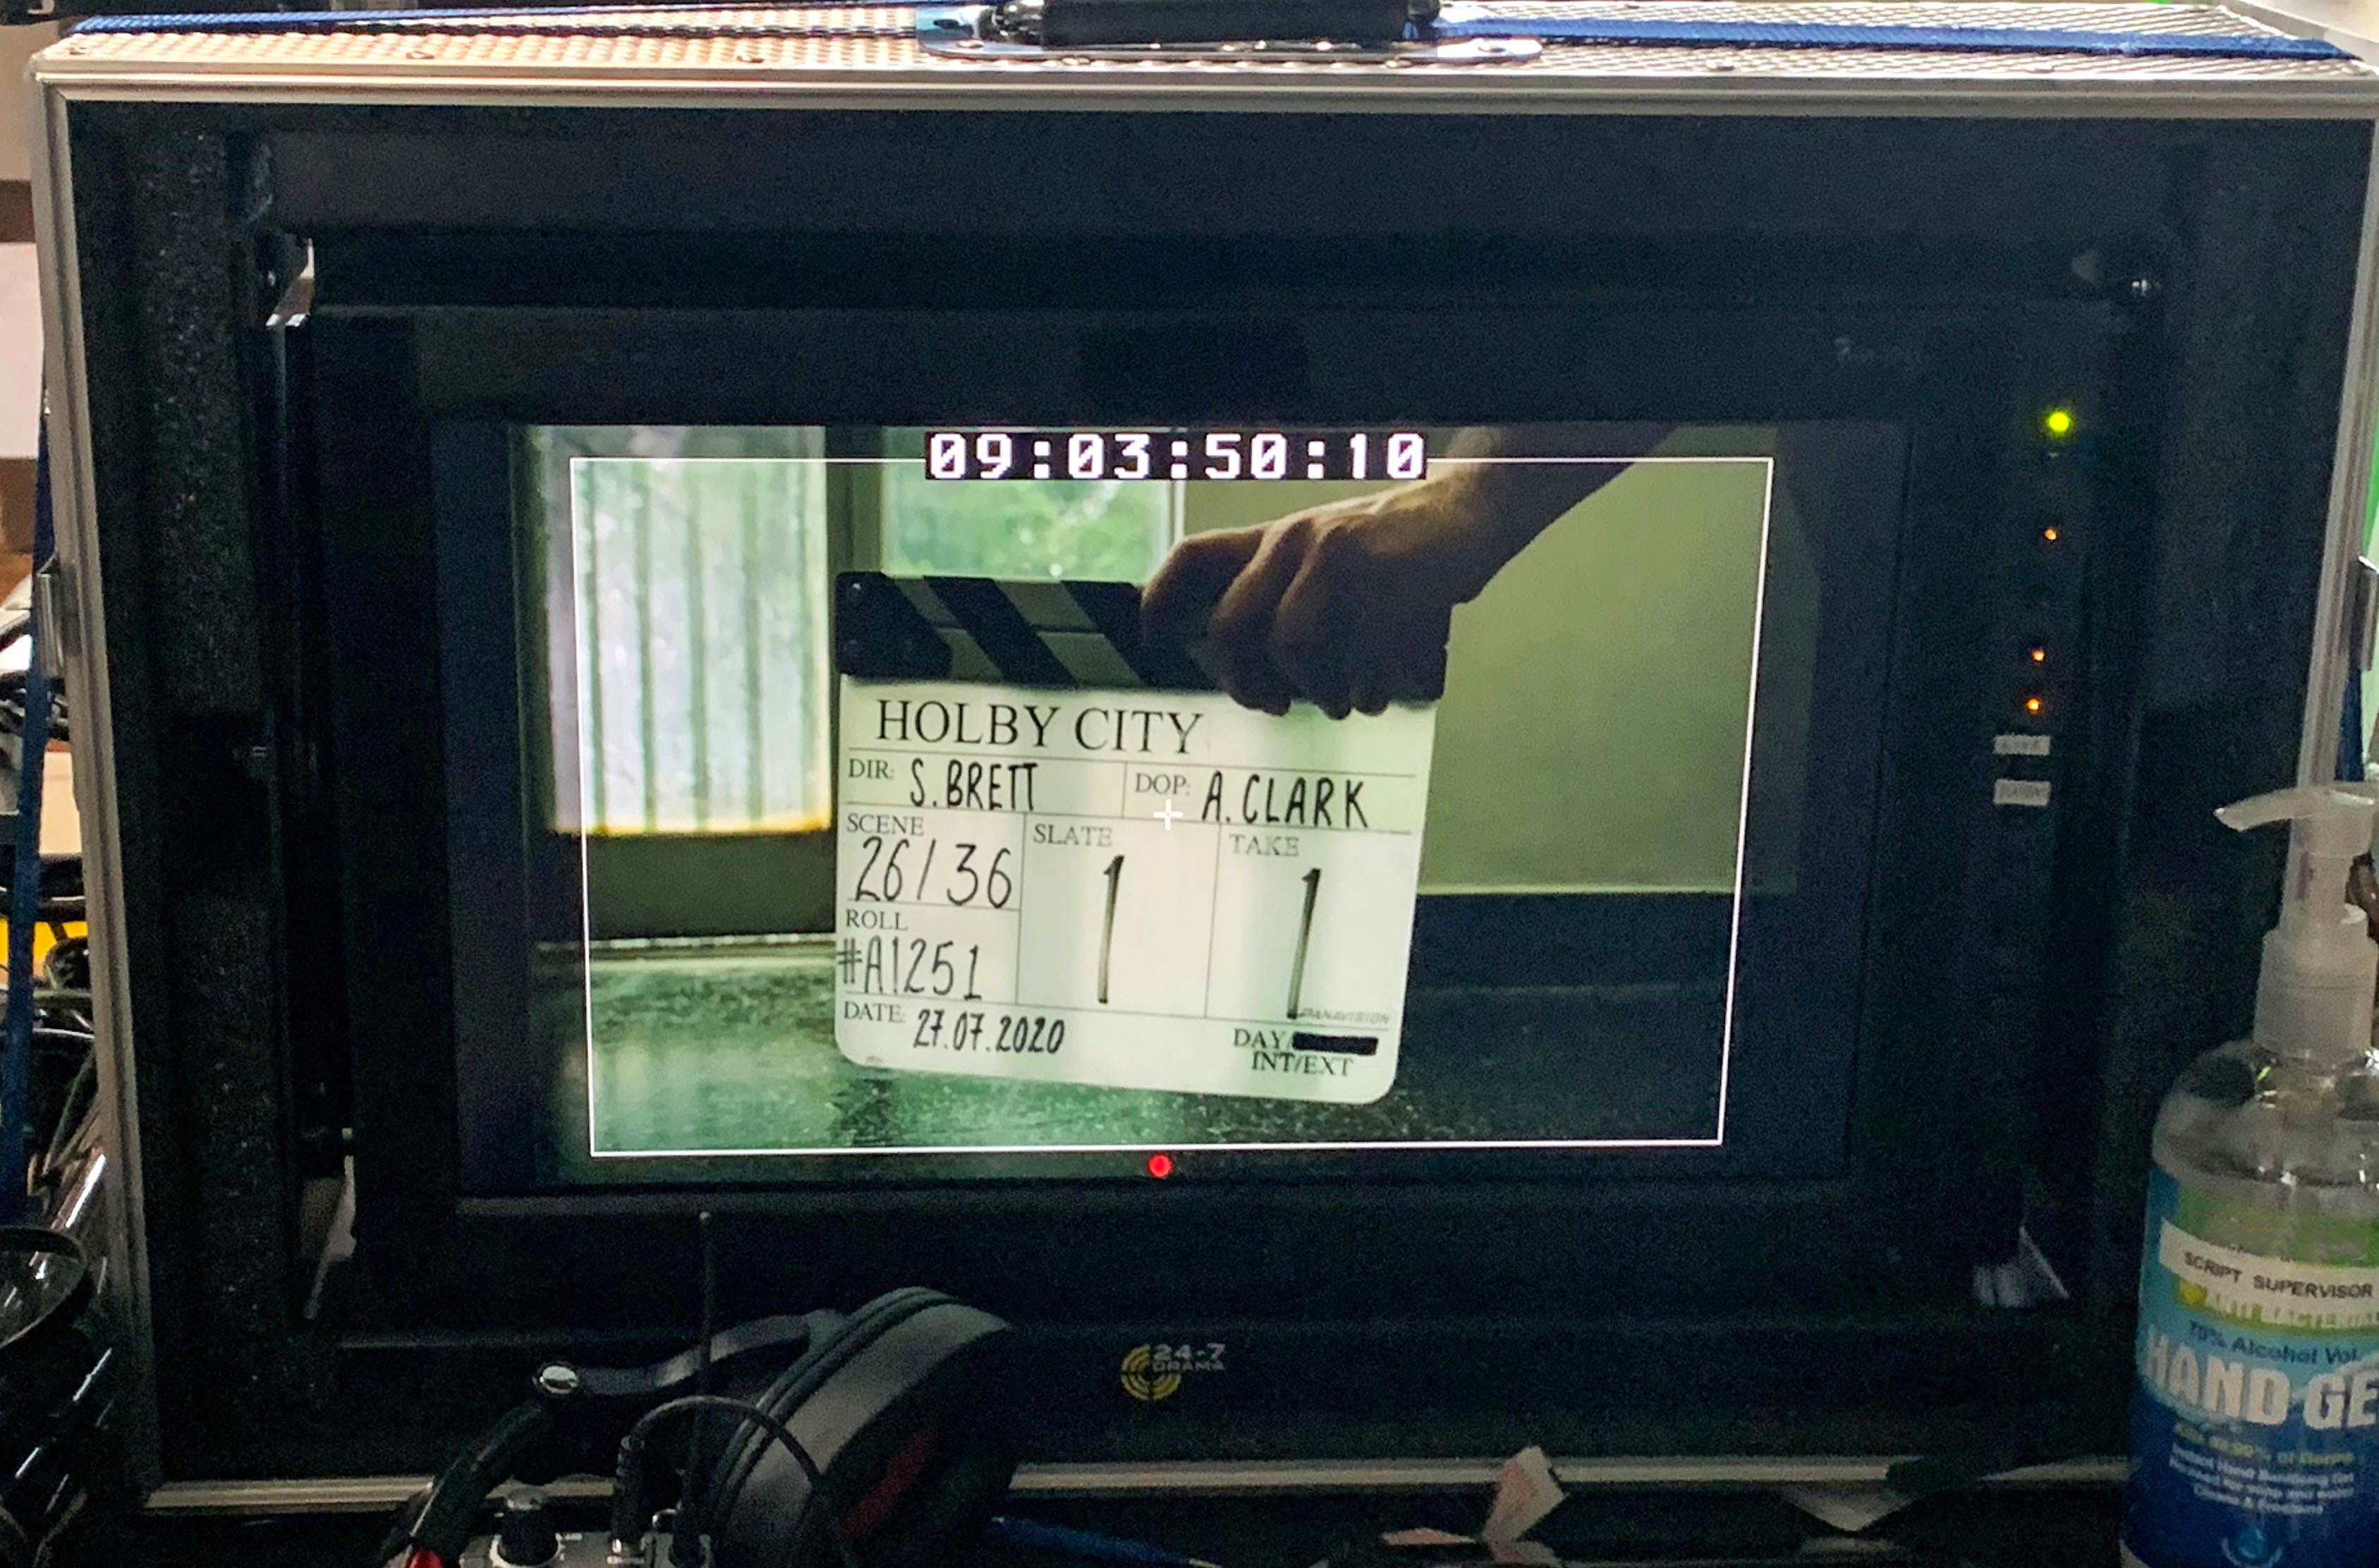 Holby - clapper board pic